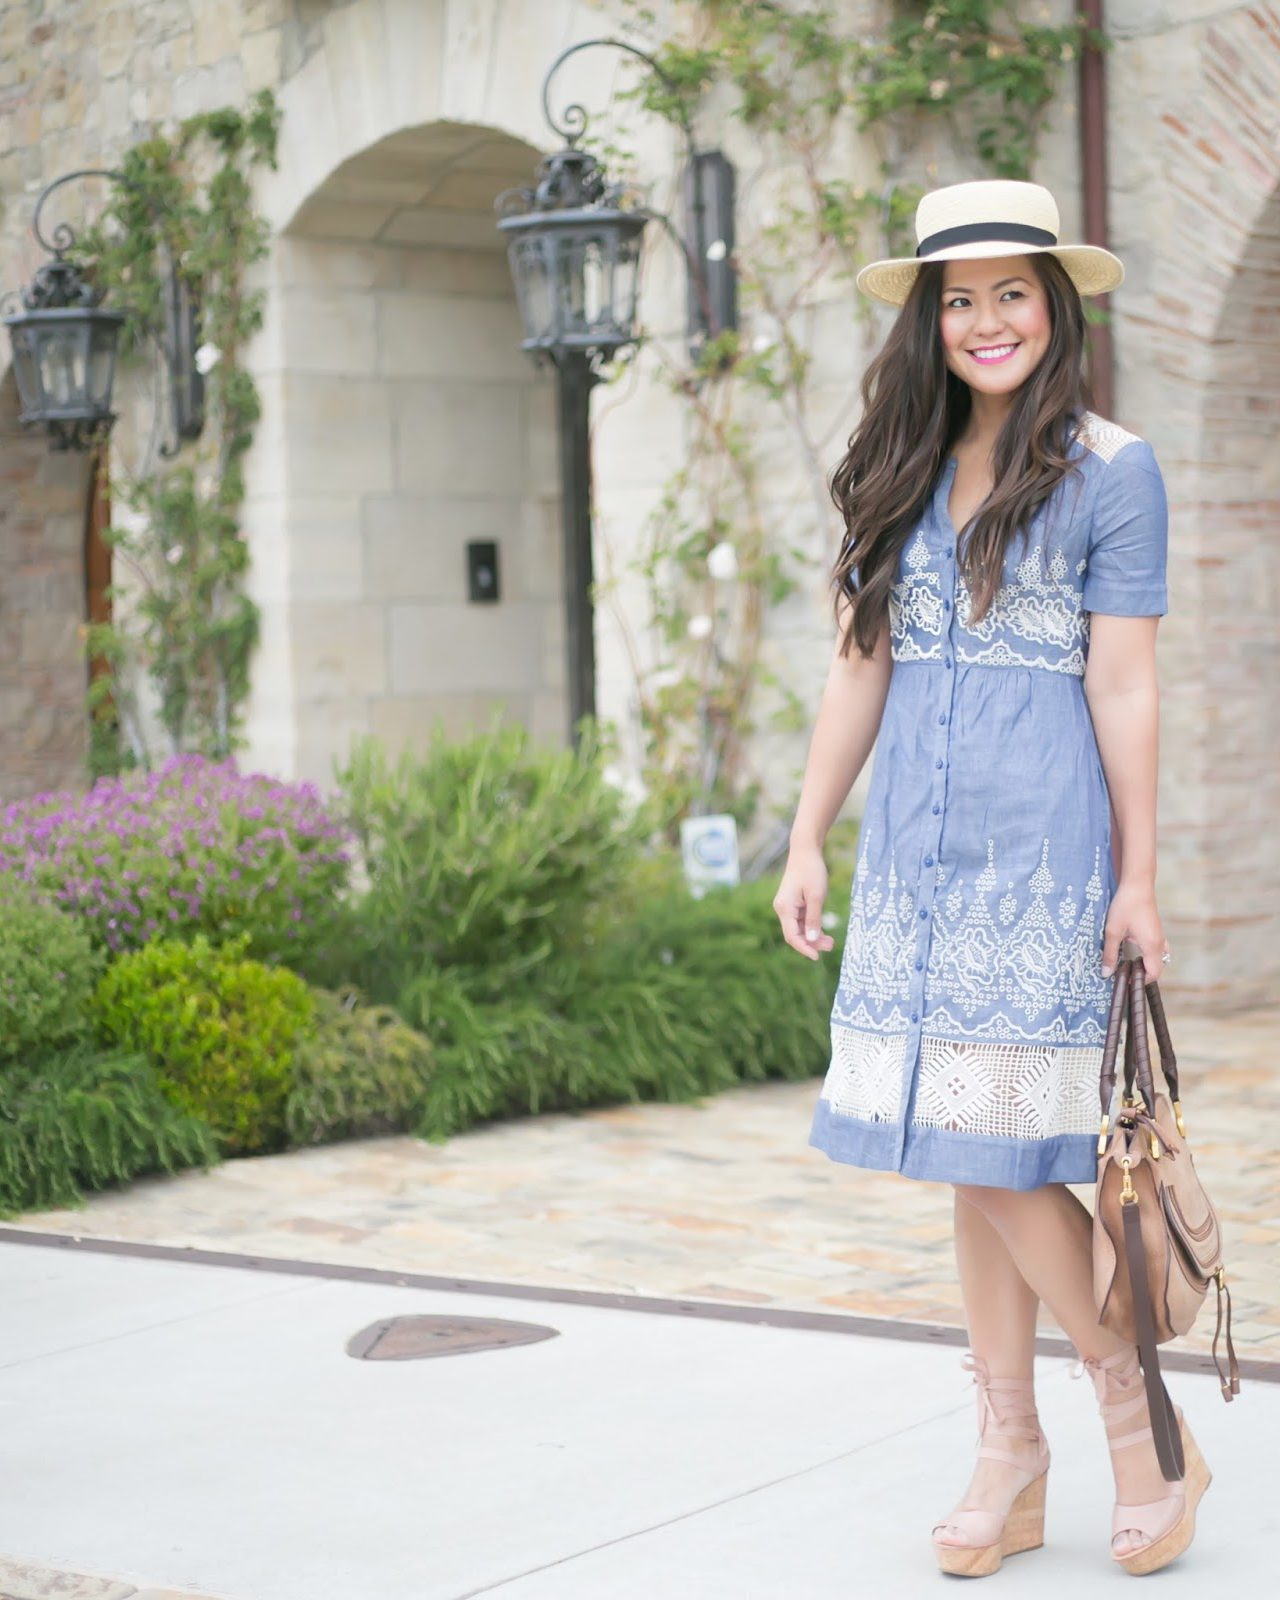 Blue Embroidered Dress + 5 Things to accomplish this Weekend